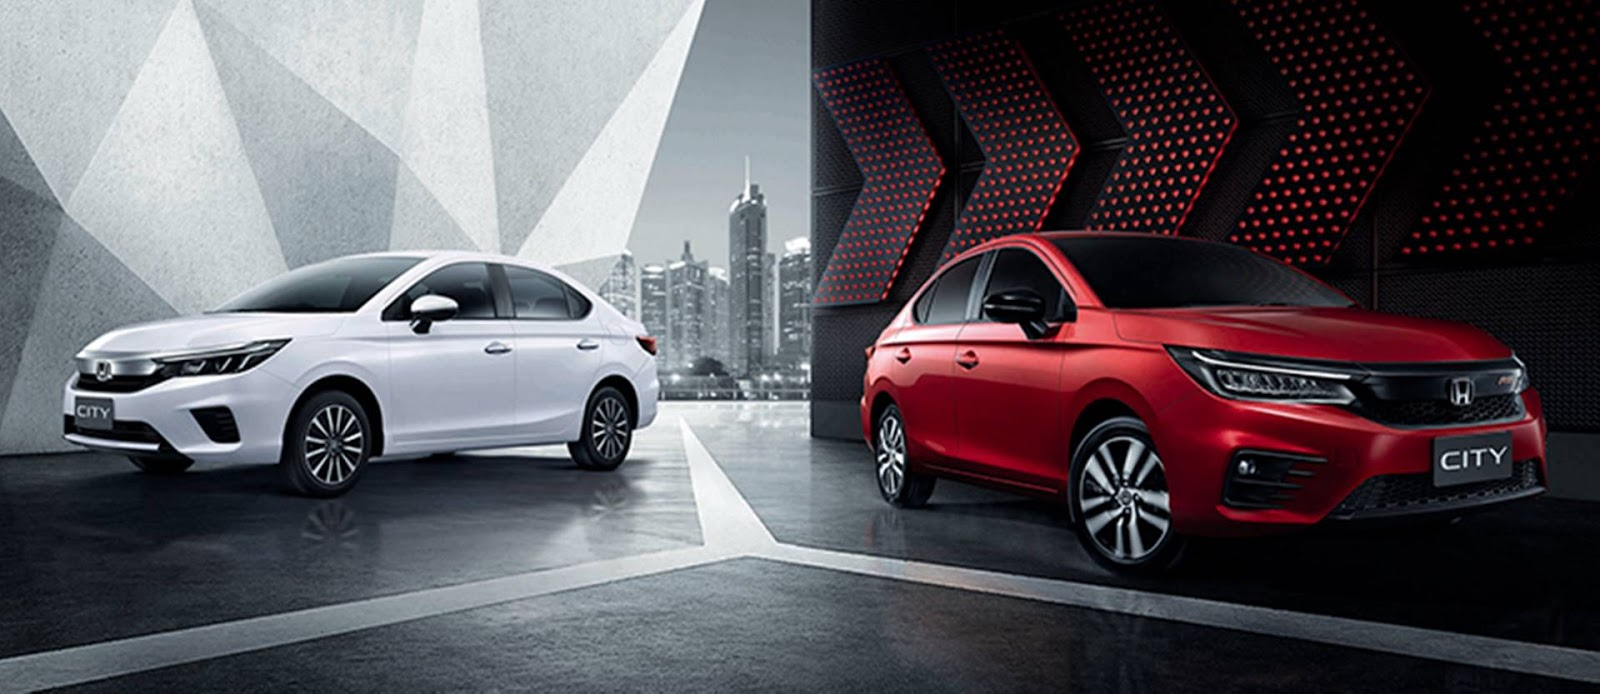 Hyundai Accent 2021 so kè cùng Honda City 2021